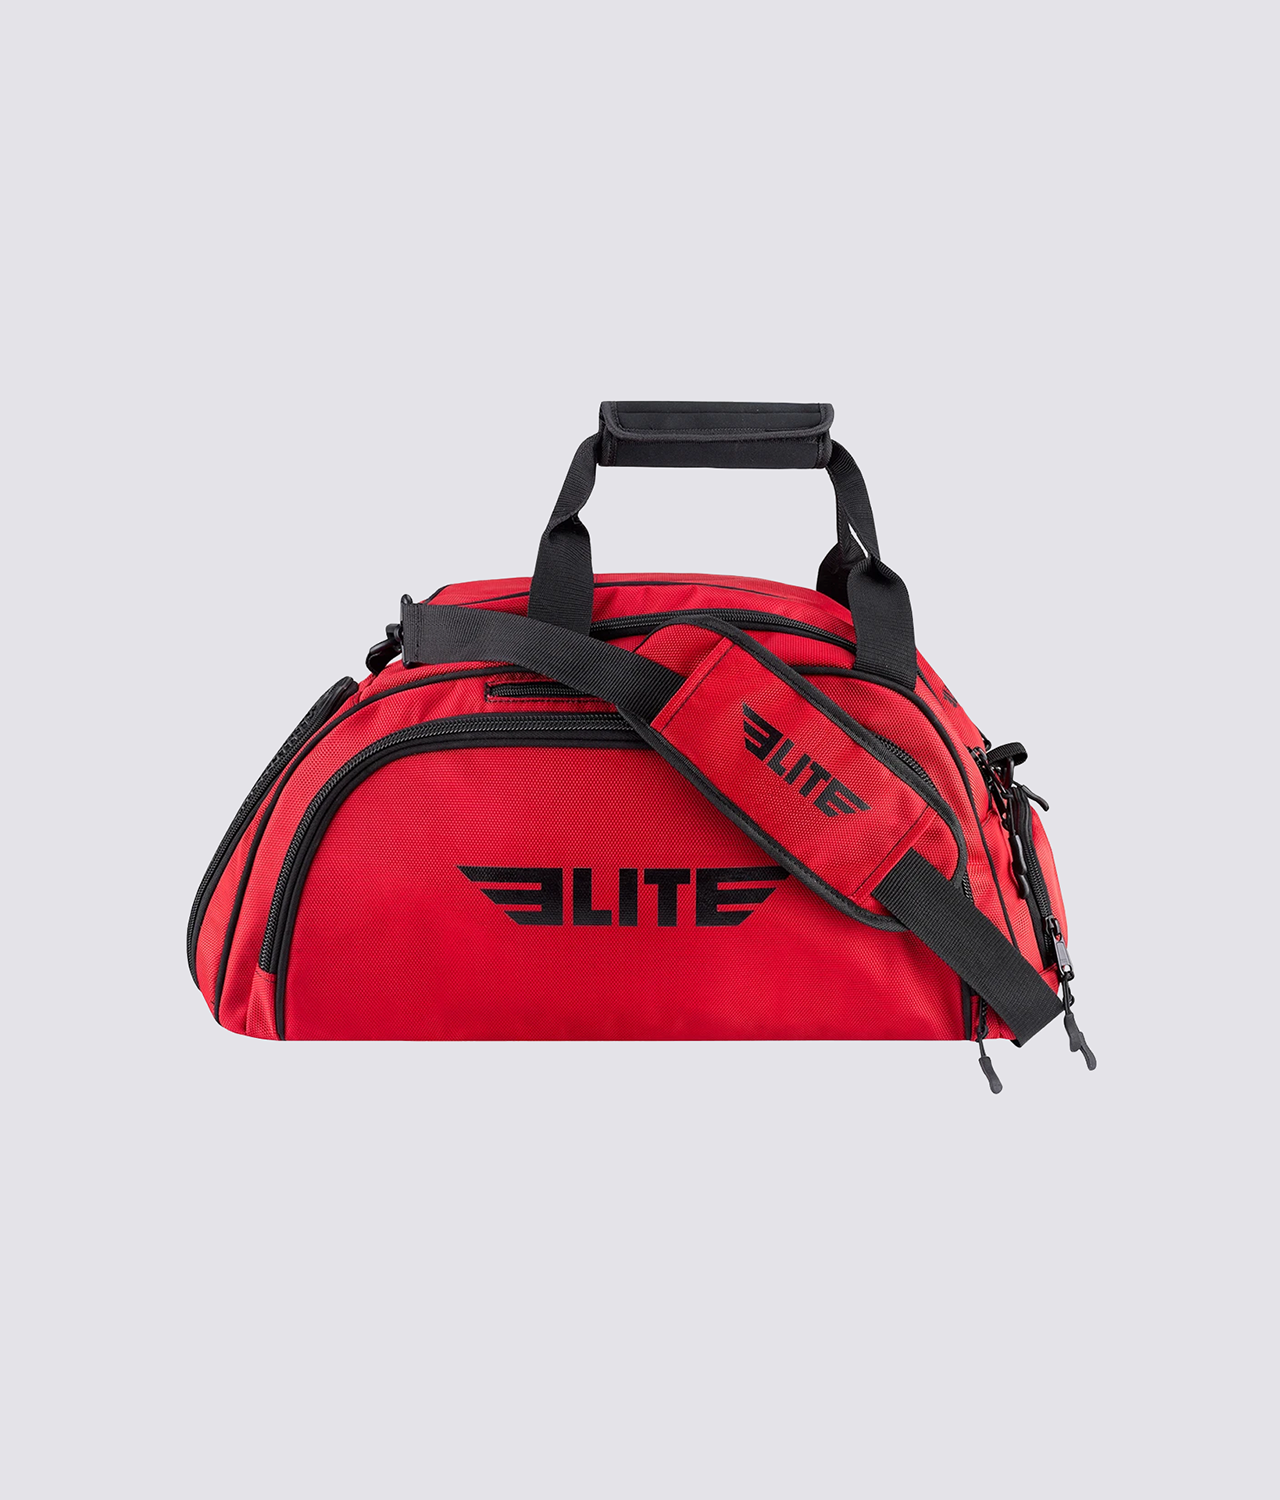 Elite Sports Warrior Series Red Medium Duffel Muay Thai Gear Gym Bag & Backpack